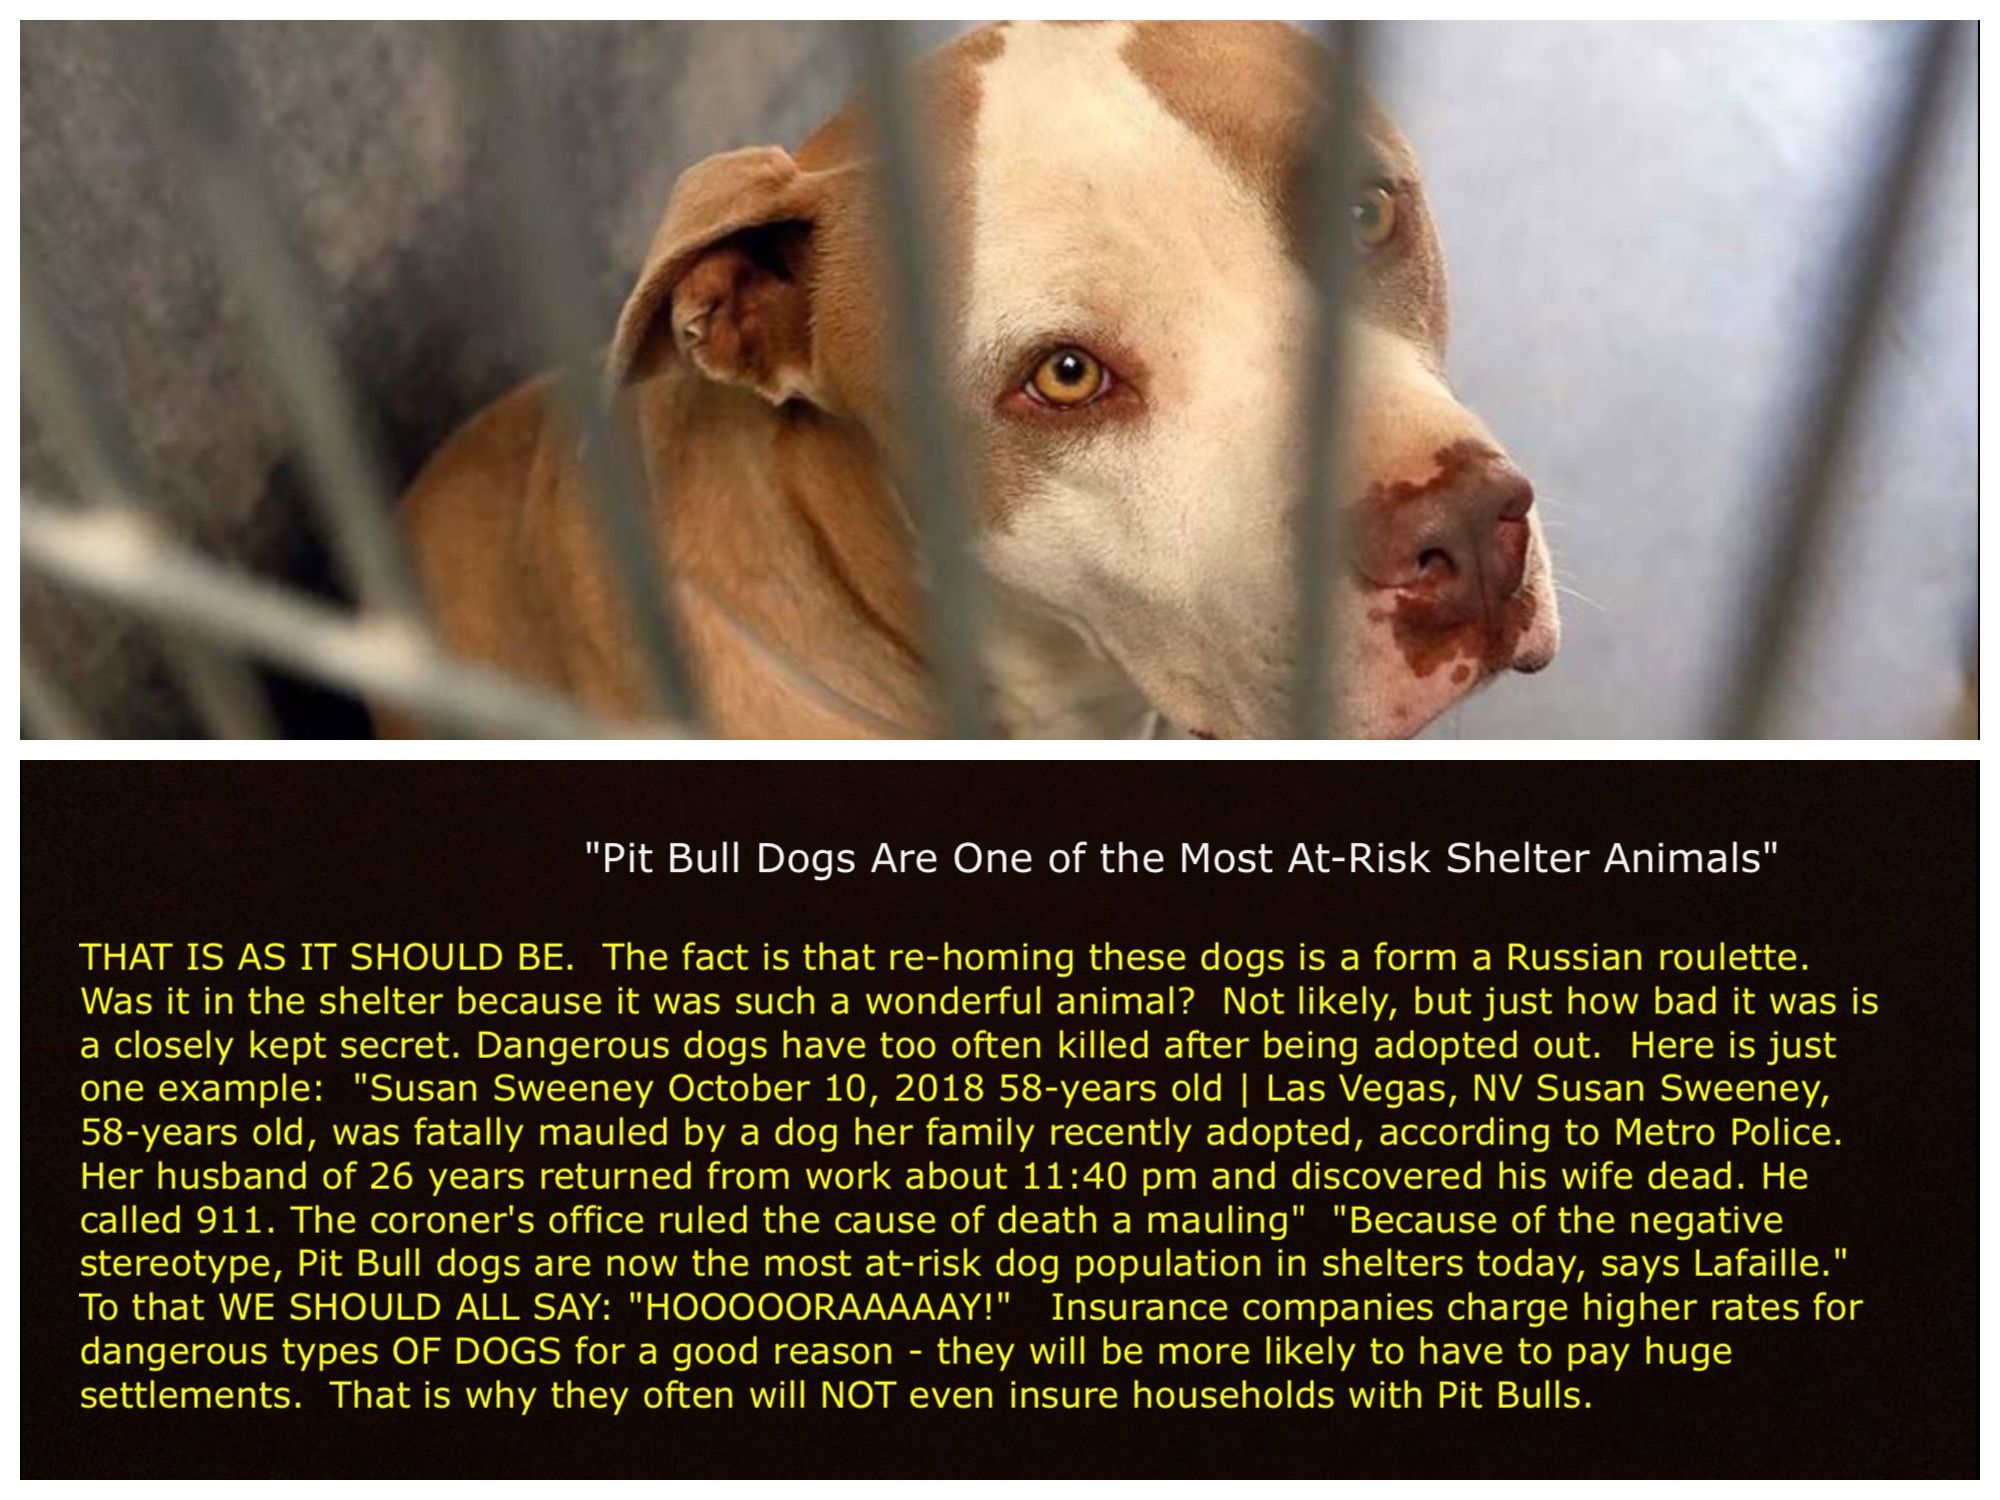 Pin by Lenore Smathers on Breed Specific Legislation YES